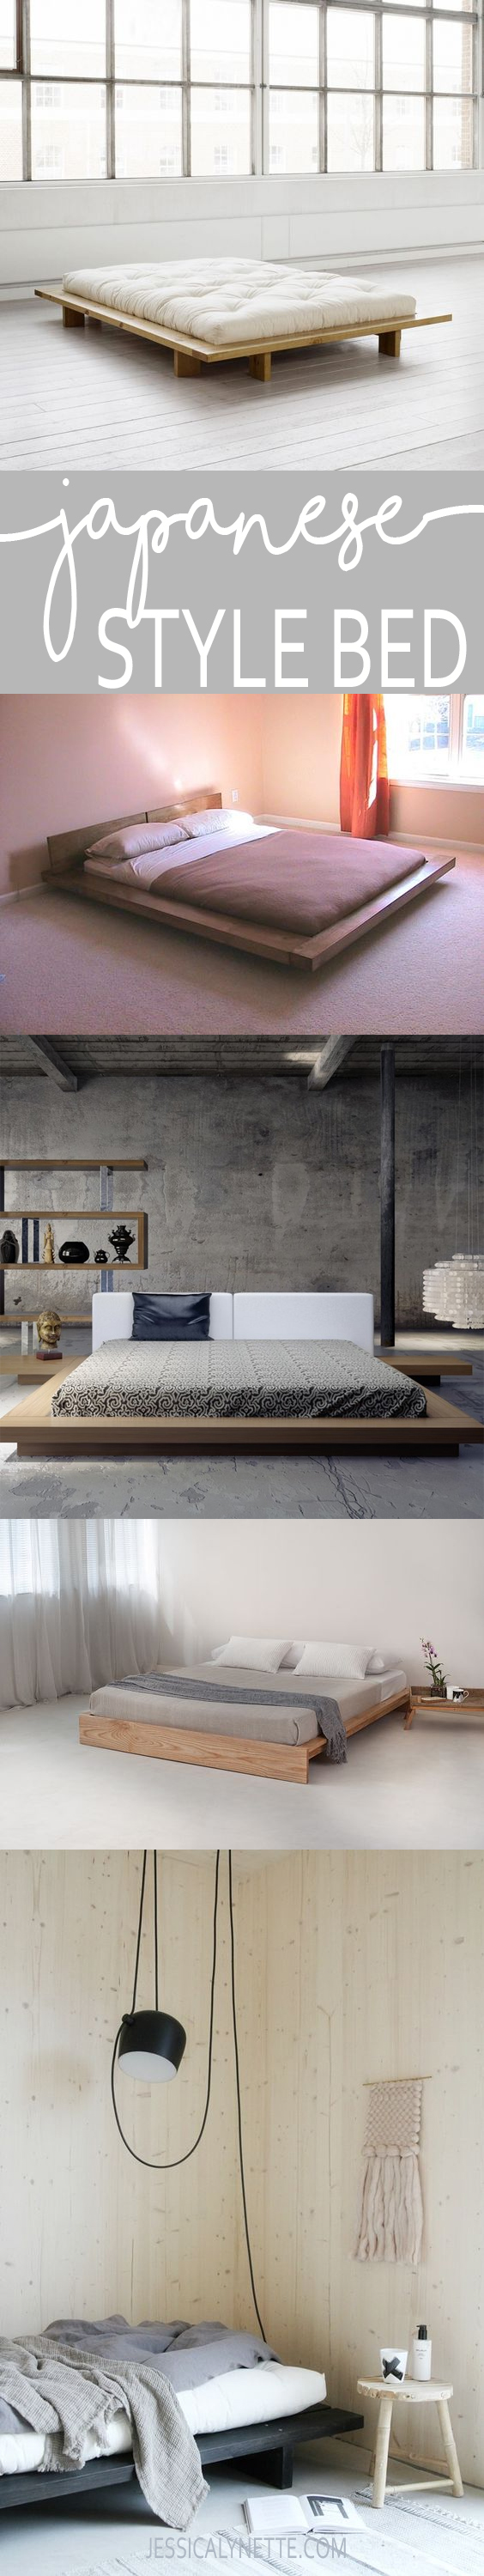 eyatg from on album pallet product gallery imgur japanese wood style first bed made platform finished